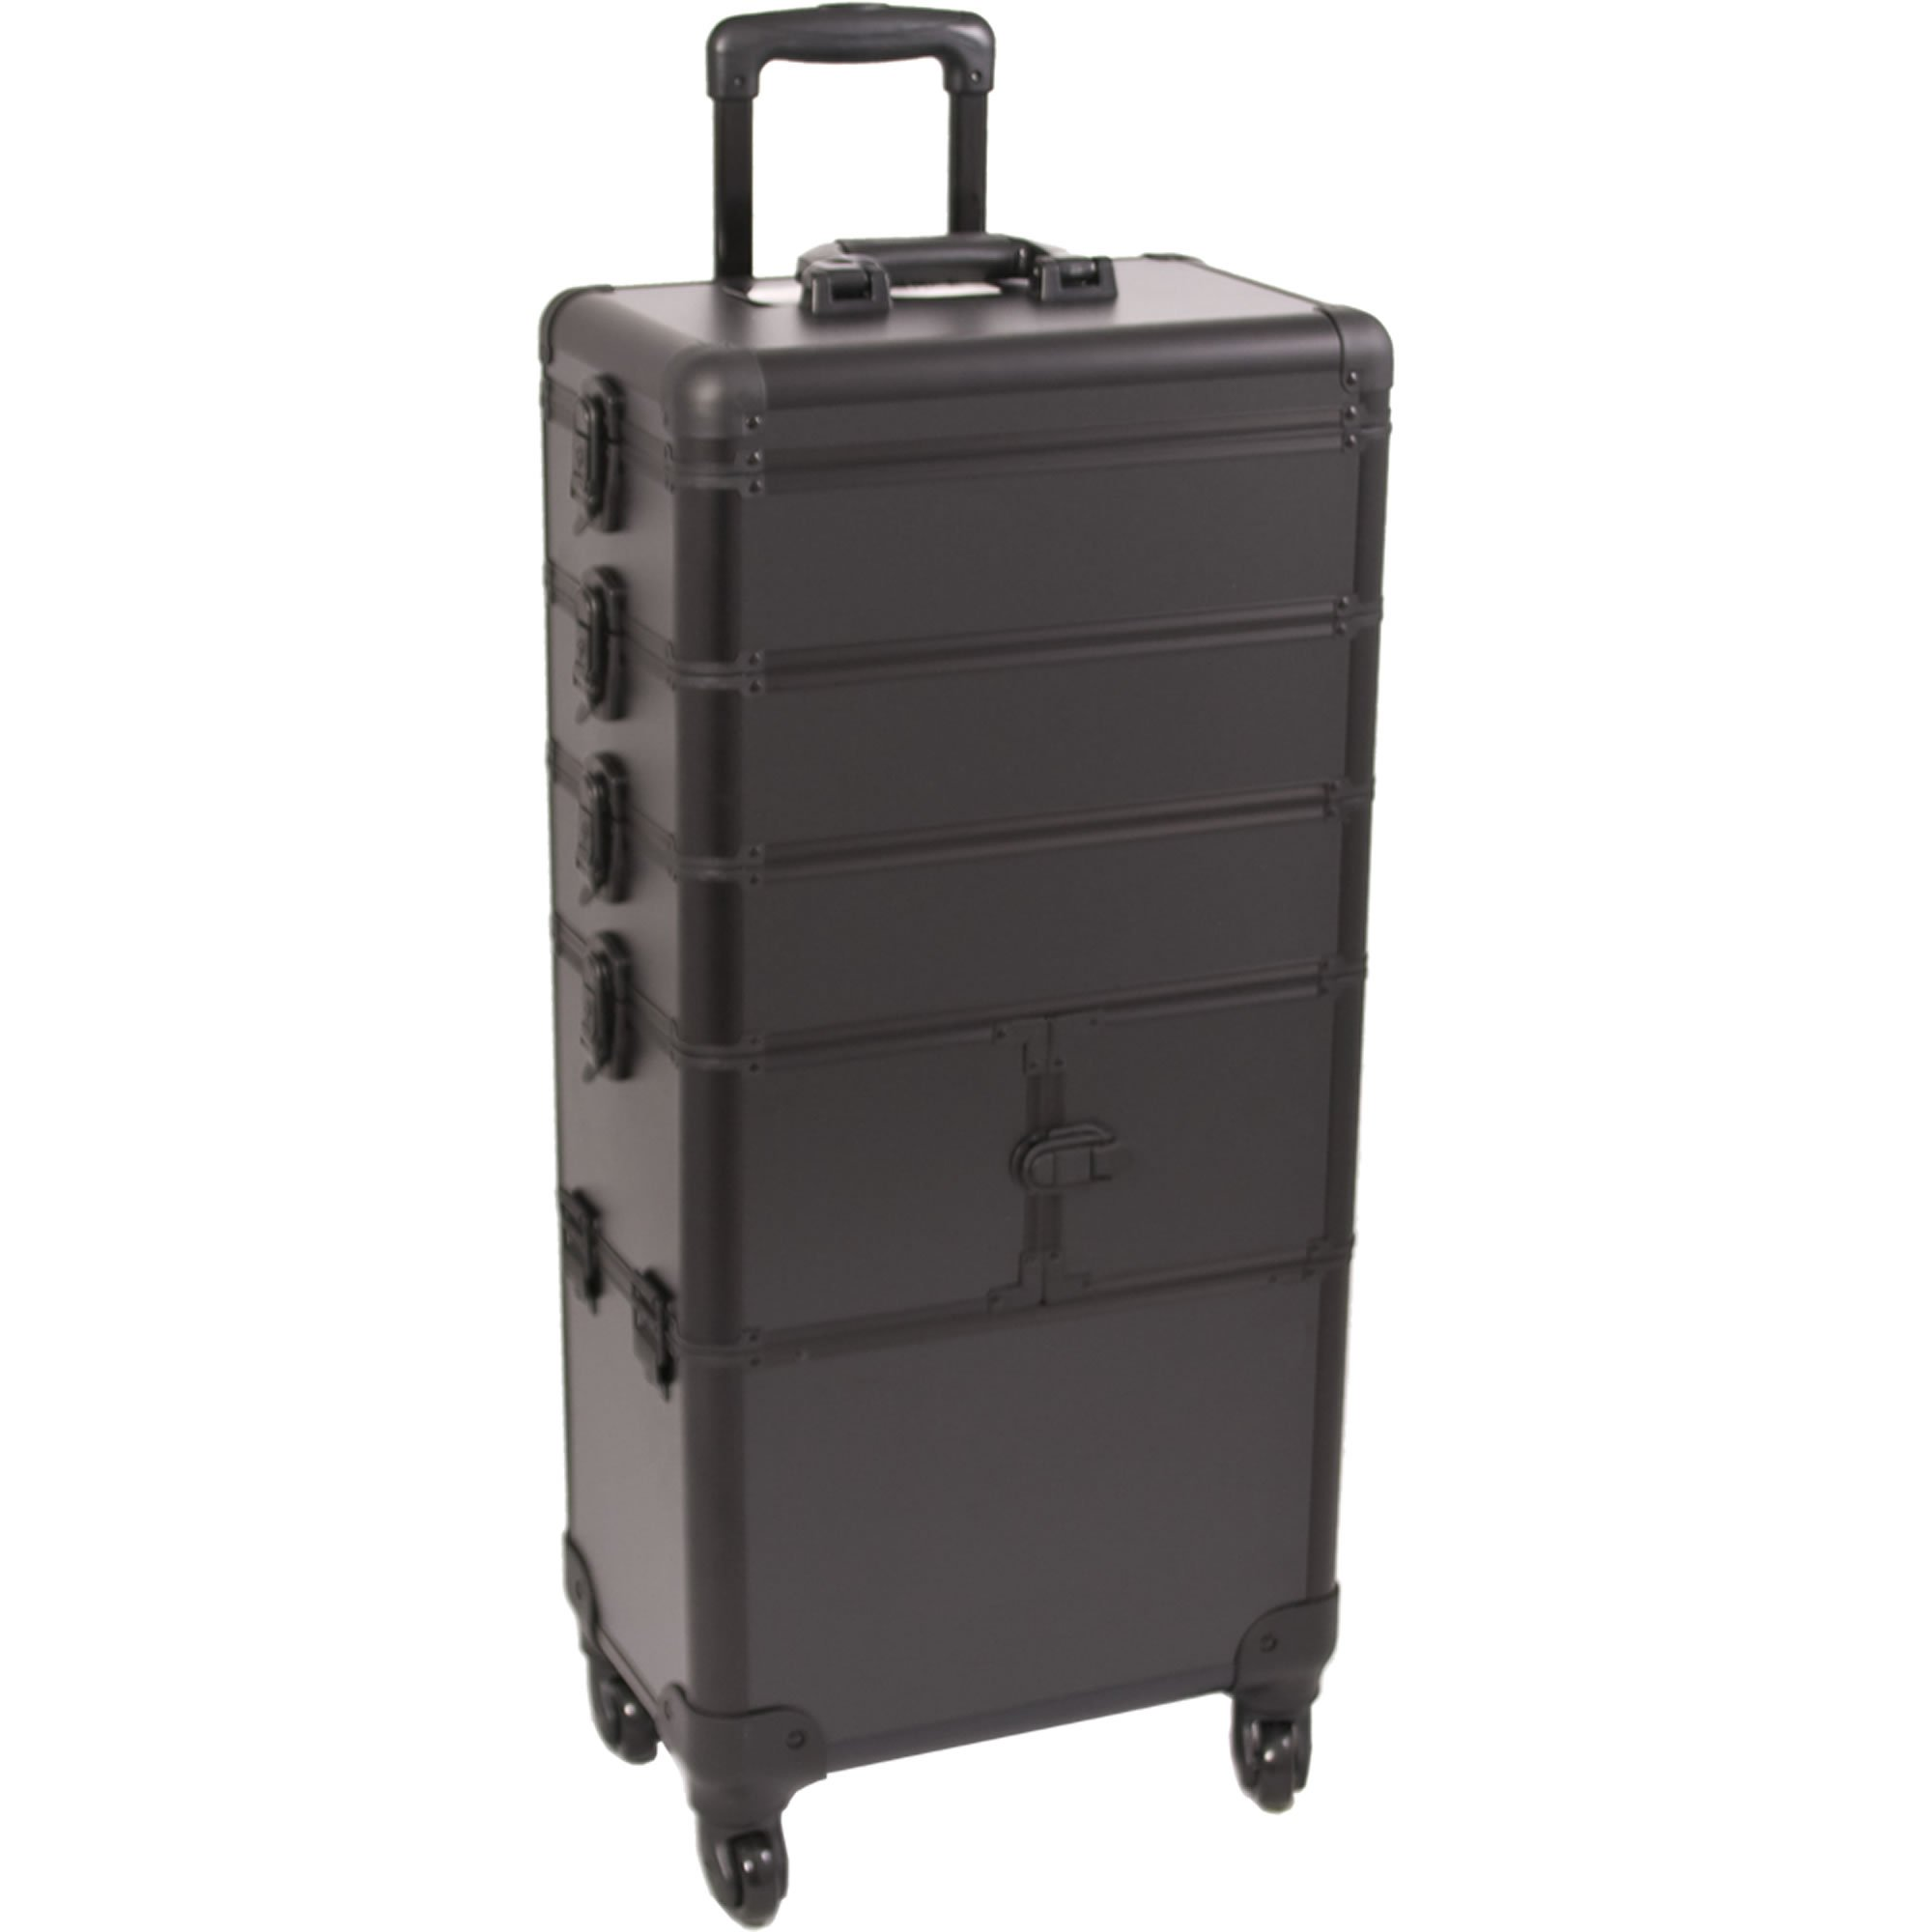 SUNRISE Makeup Rolling Case 4 in 1 Professional Organizer I3364 Aluminum, 3 Stackable Trays and Two 3 Tier Trays, 4 Wheel Spinner, Black Matte by SunRise